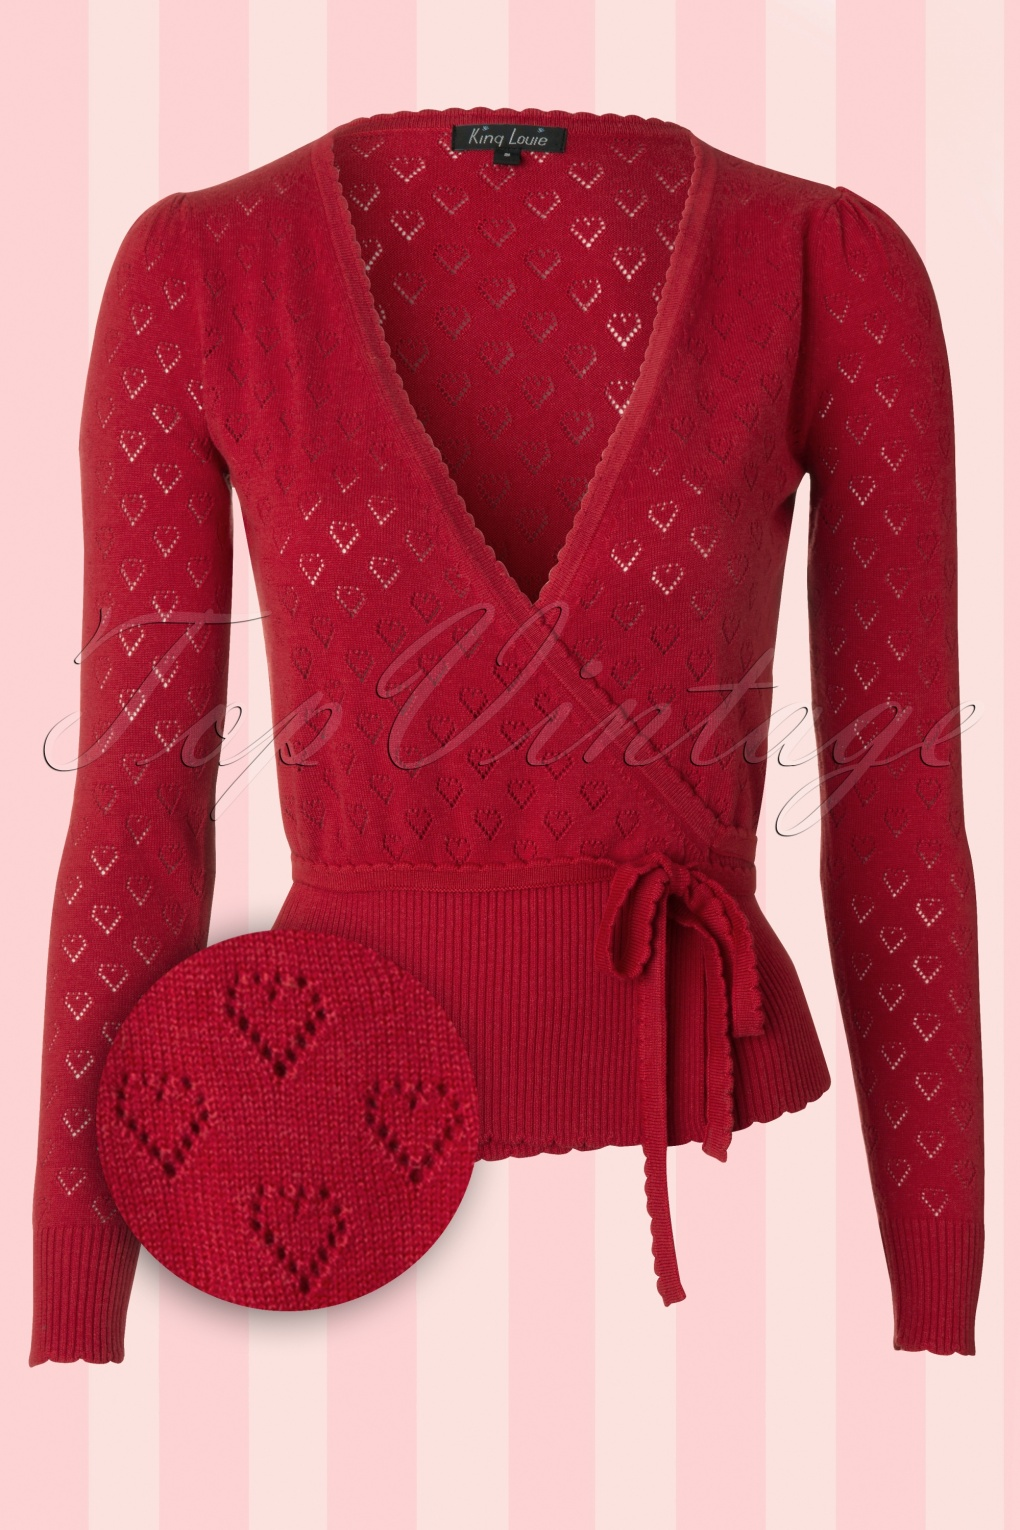 1940s Blouses, Shirts and Tops Fashion History 40s Wrap Heart Ajour Top in Red £69.45 AT vintagedancer.com